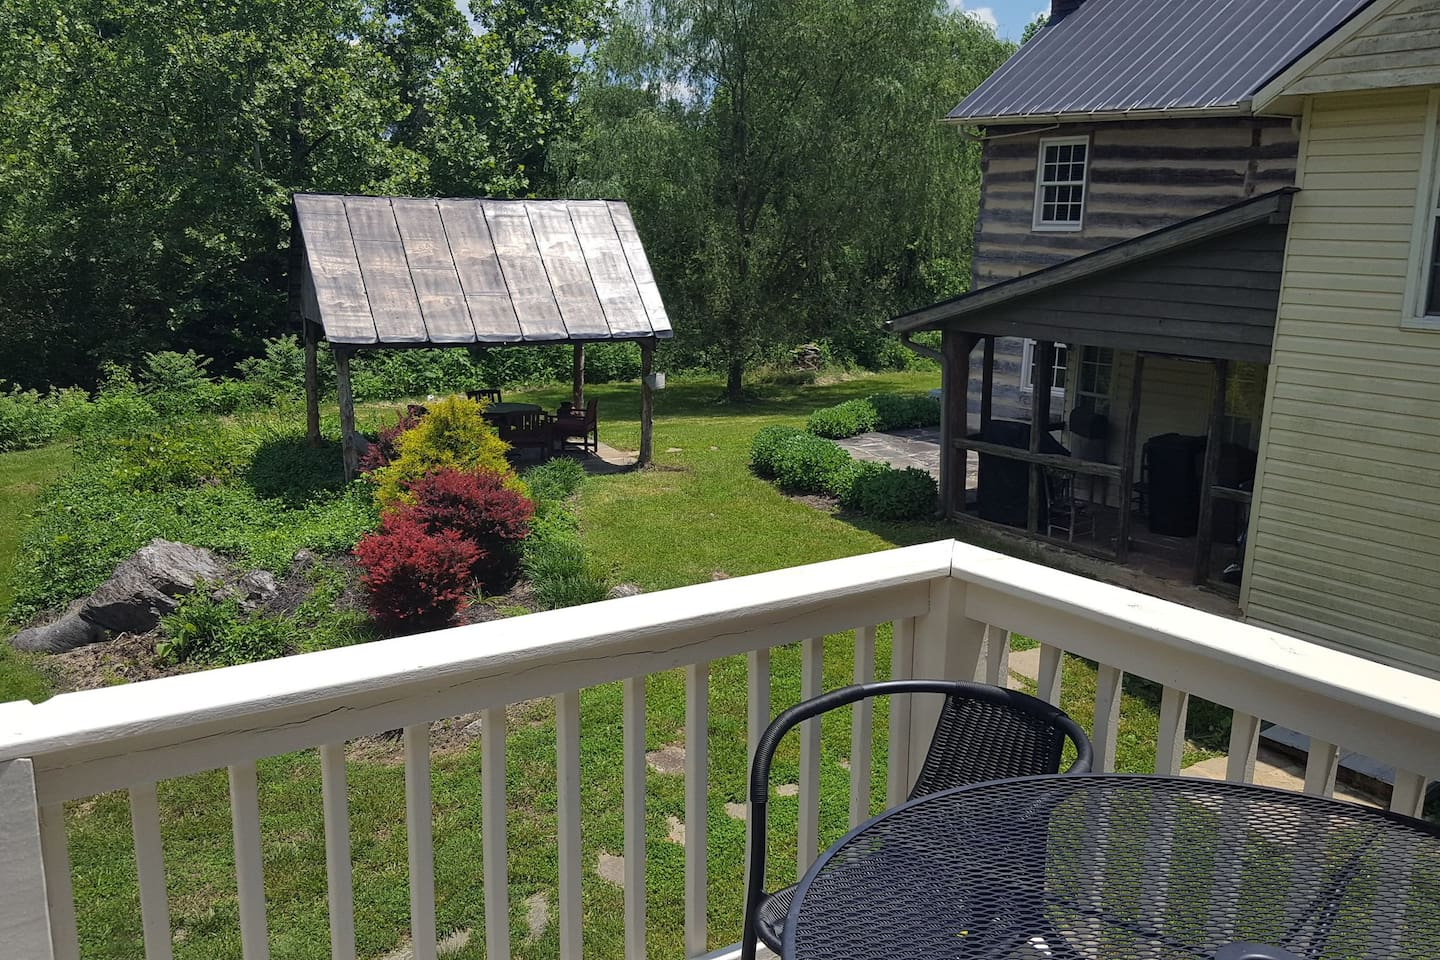 View from the deck of the loft